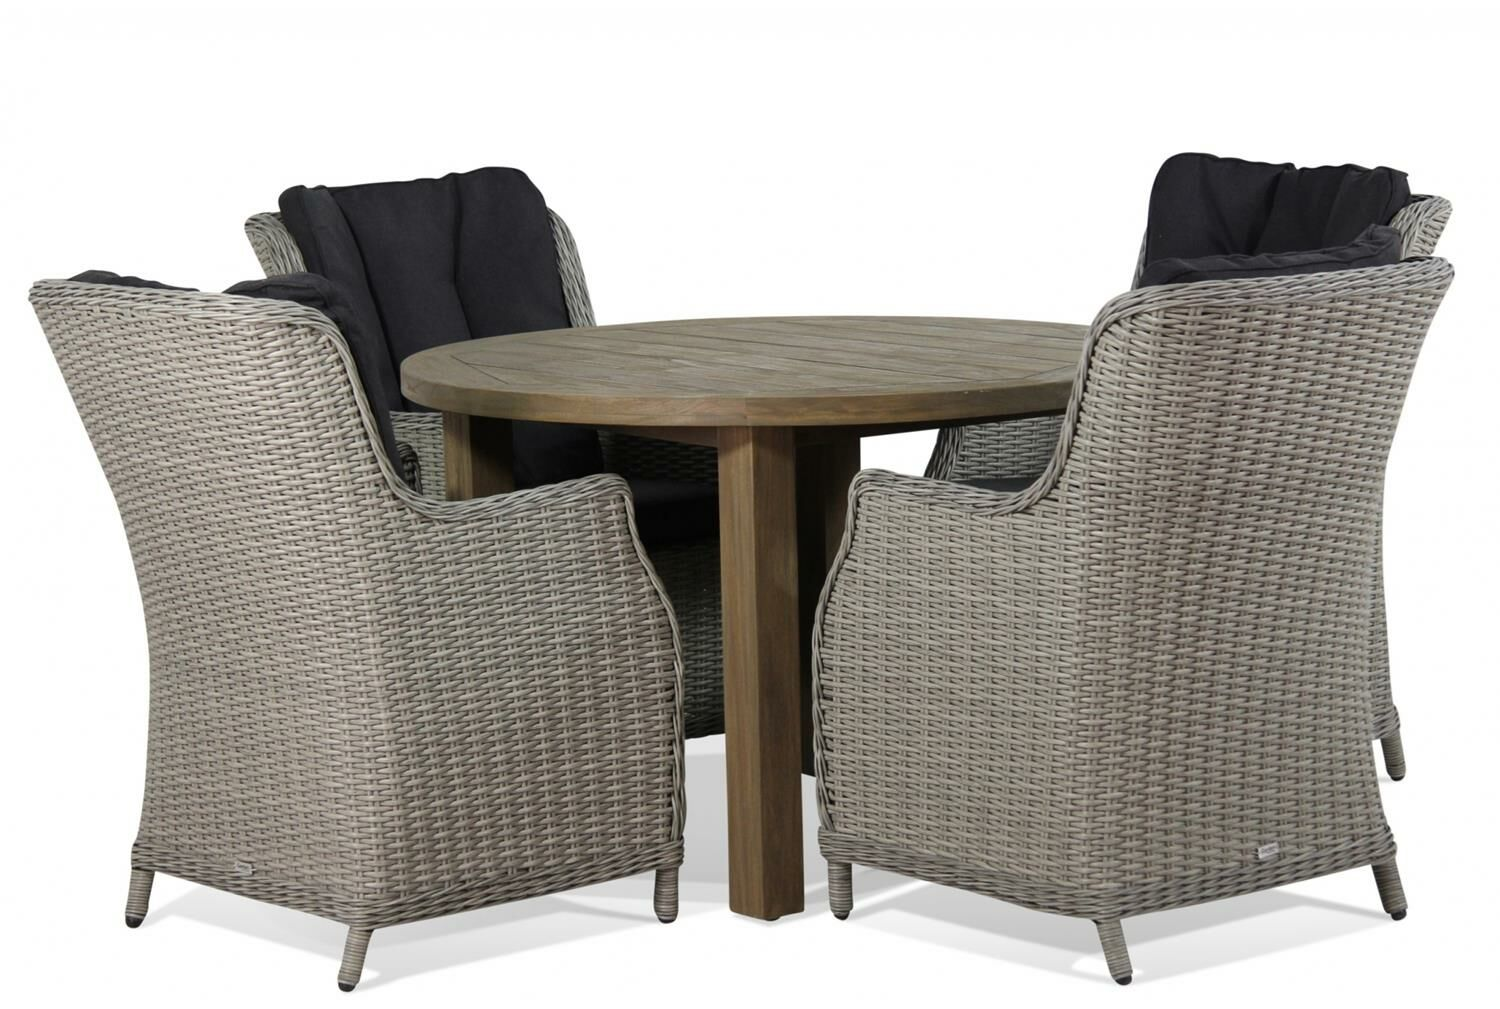 Tuinset Oxford Collection.Garden Collections Buckingham Oxford 120 Cm Dining Tuinset 5 Delig